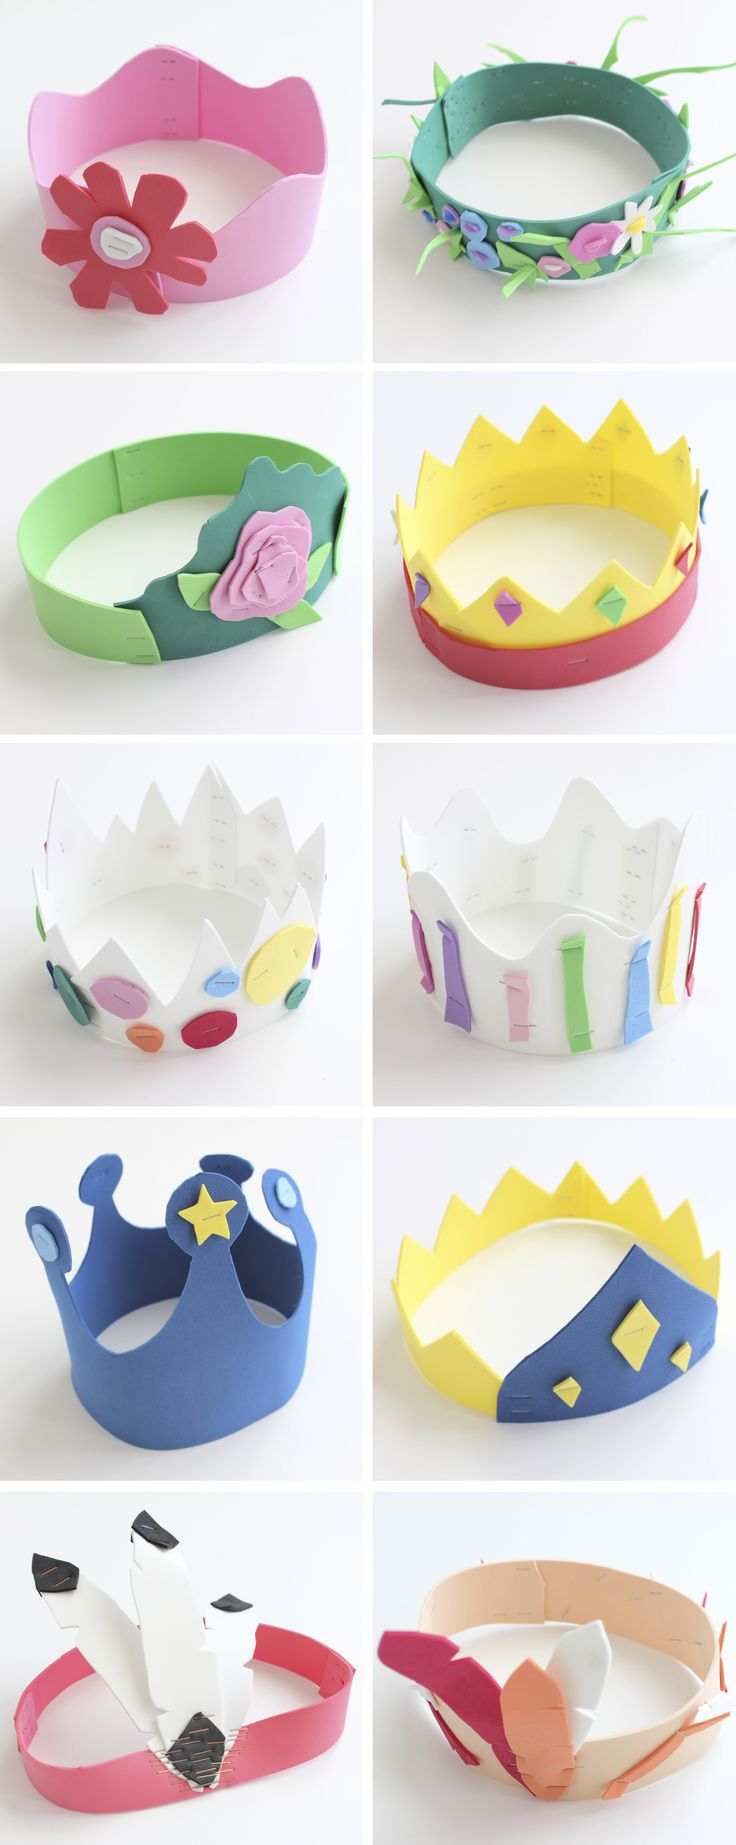 Crown made from eva foam - very creative!